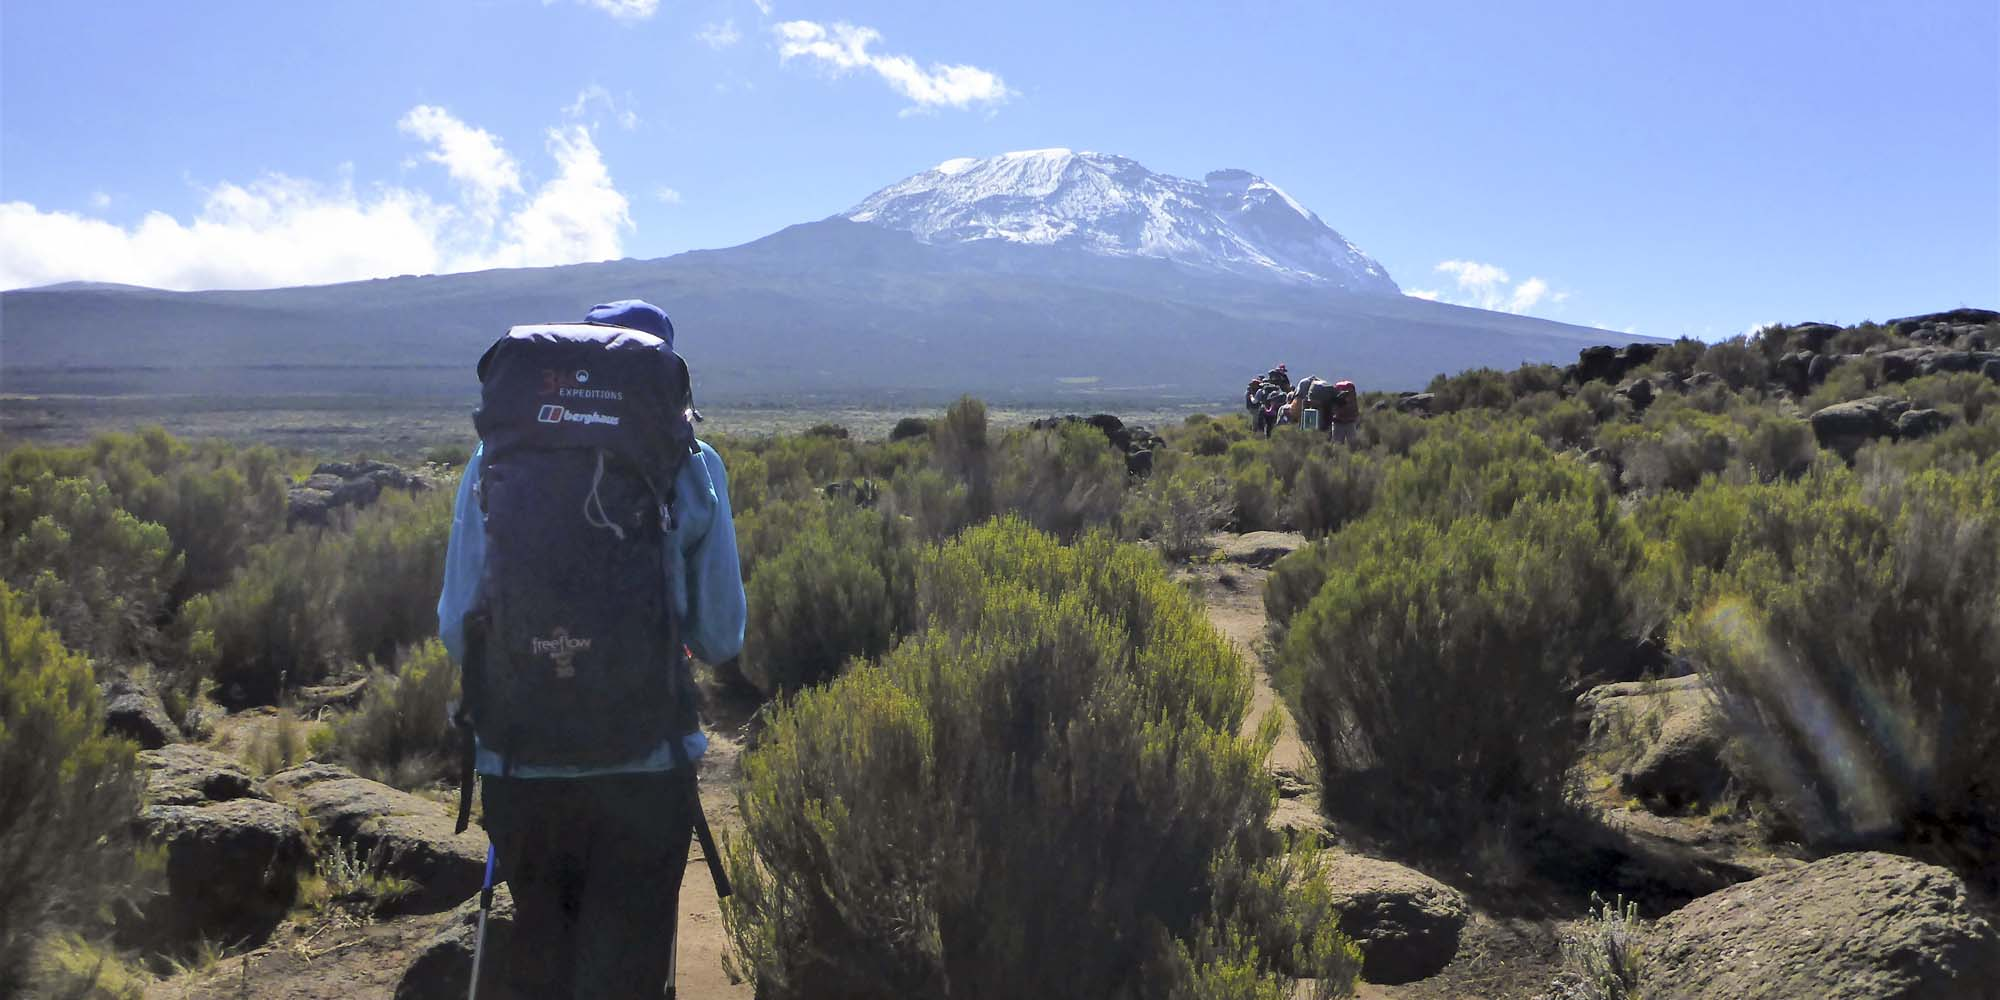 Trek Mount Kilimanjaro Lemosho Route With 360 Expeditions